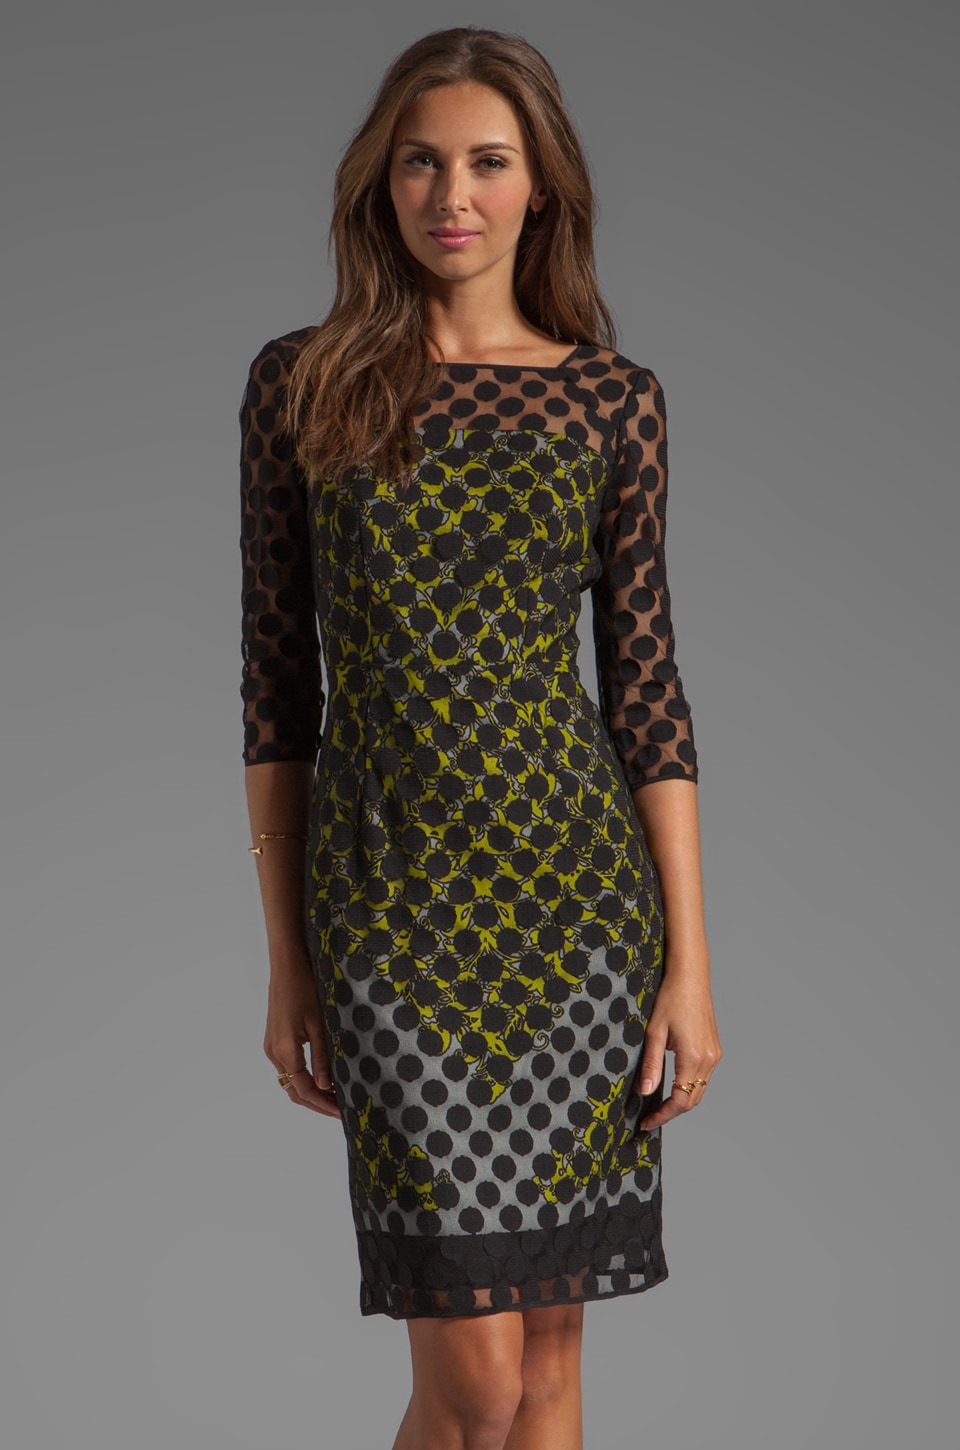 MILLY Ornamentale Print Elise Sleeve Sheath Dress in Citron